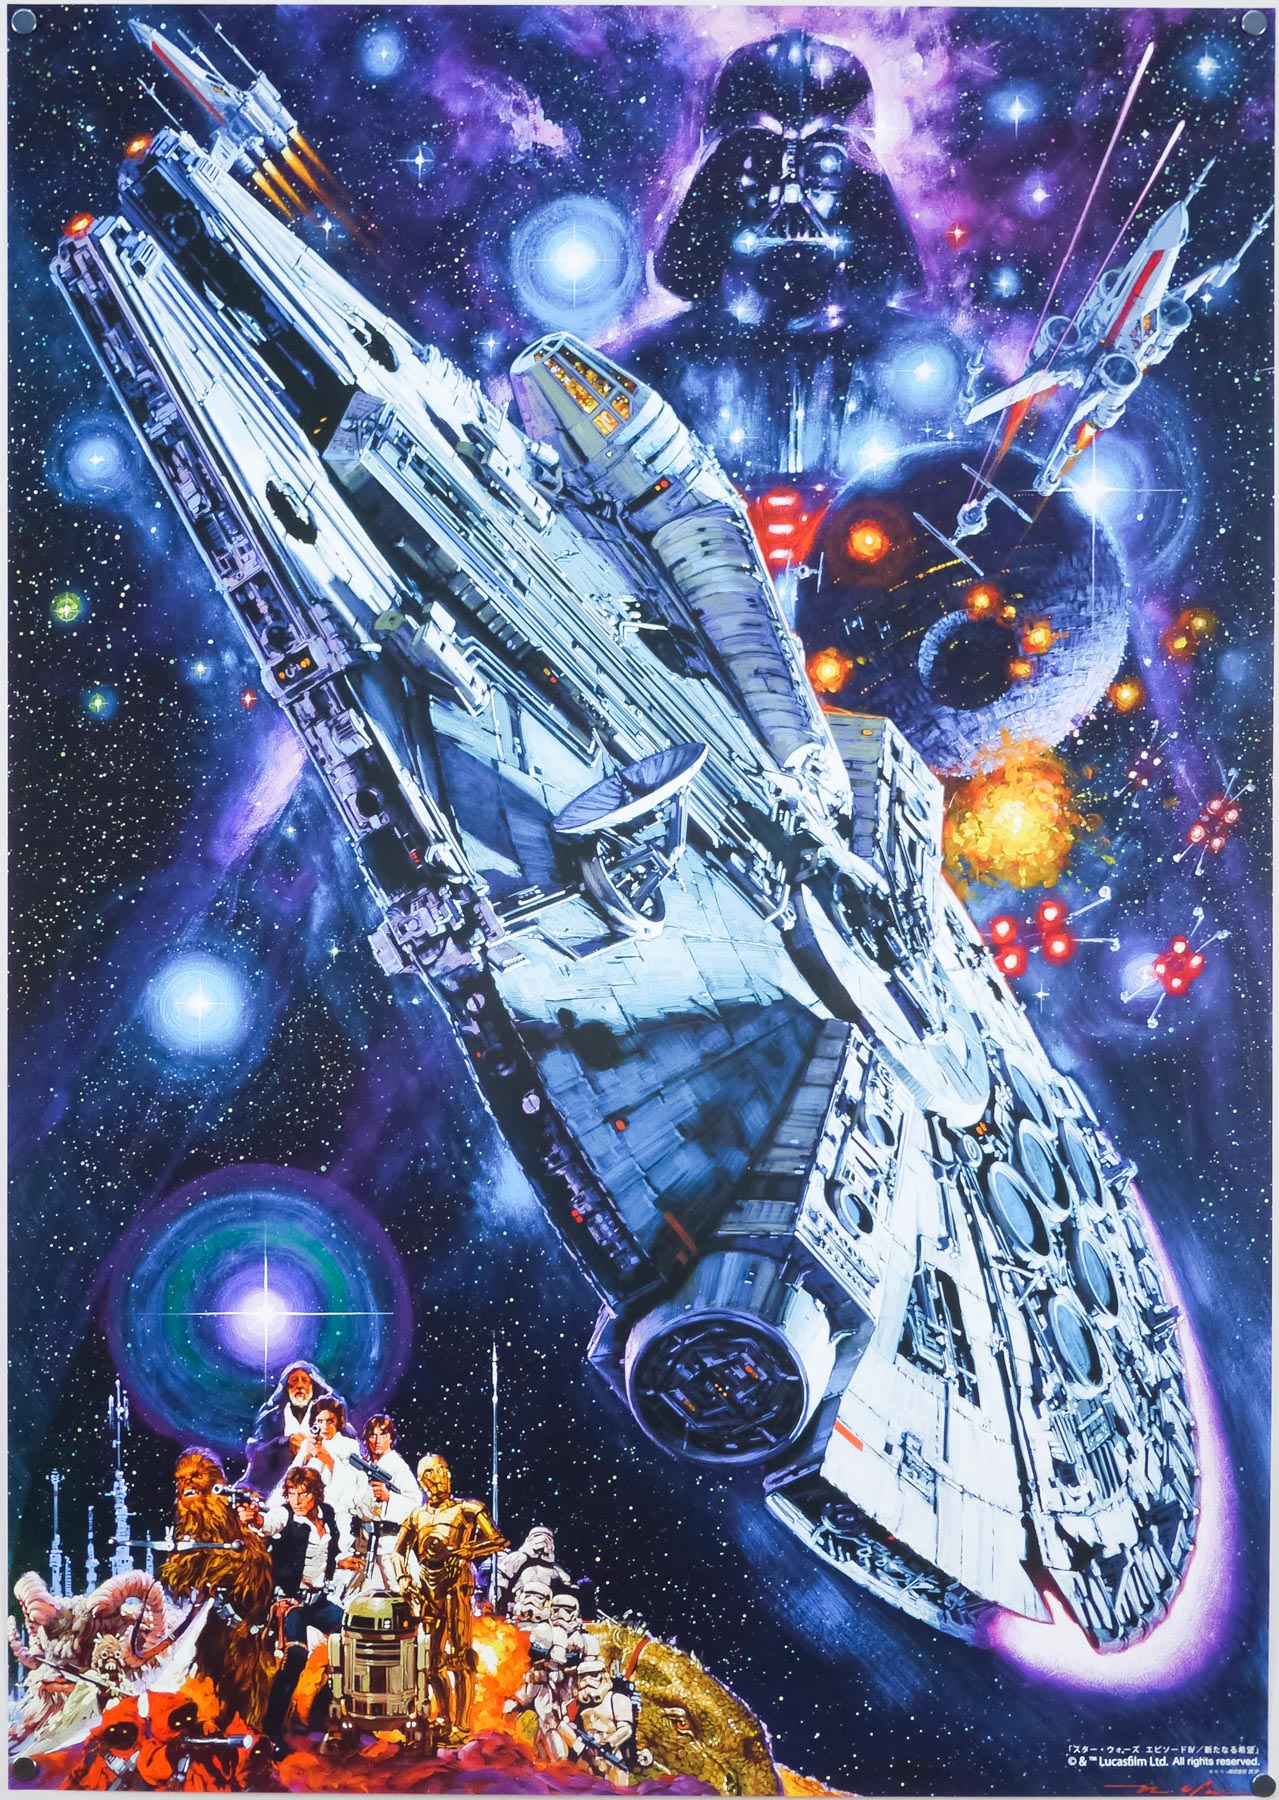 A Star Wars poster printed in Japan to commemorate the release of a dubbed version of the original film in 1982, painted by Noriyoshi Ohrai. The huge (around A1 size) original art was on display at the exhibition and this small print was available to buy in the shop.